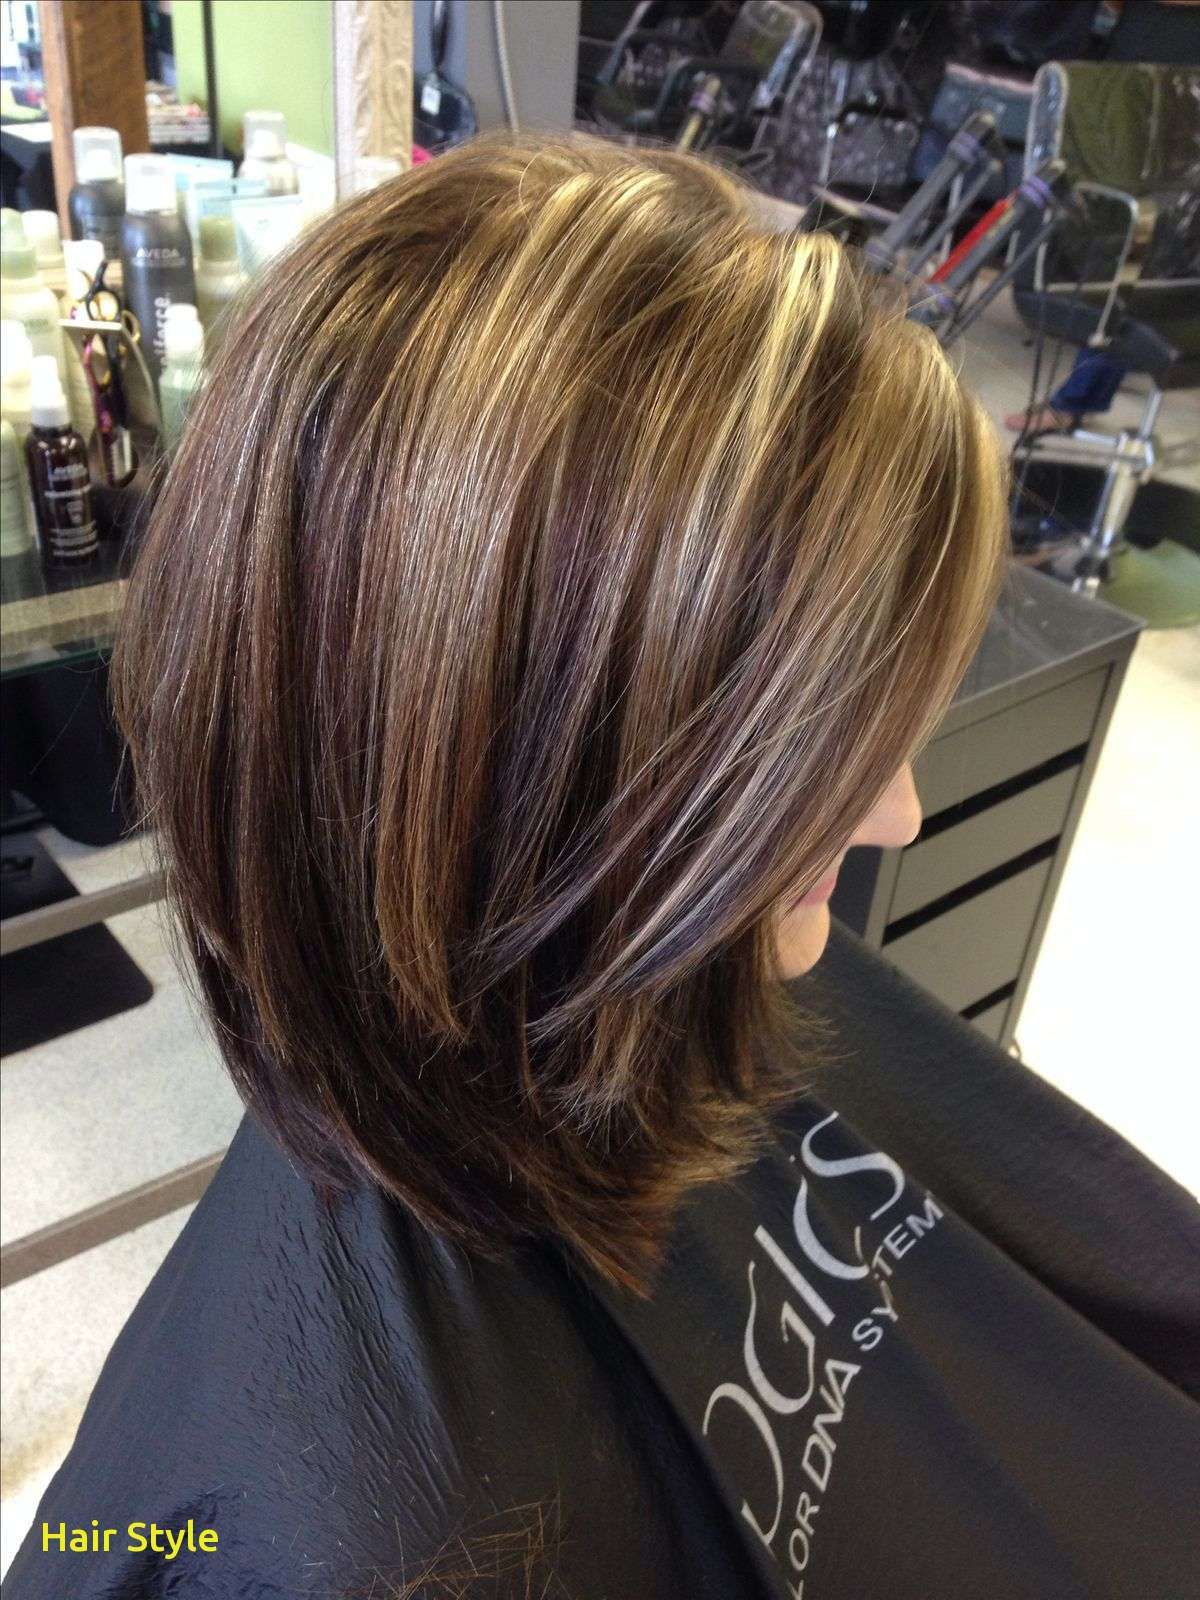 Inspirational Dimensional Blonde Highlights Hair cuts and colours